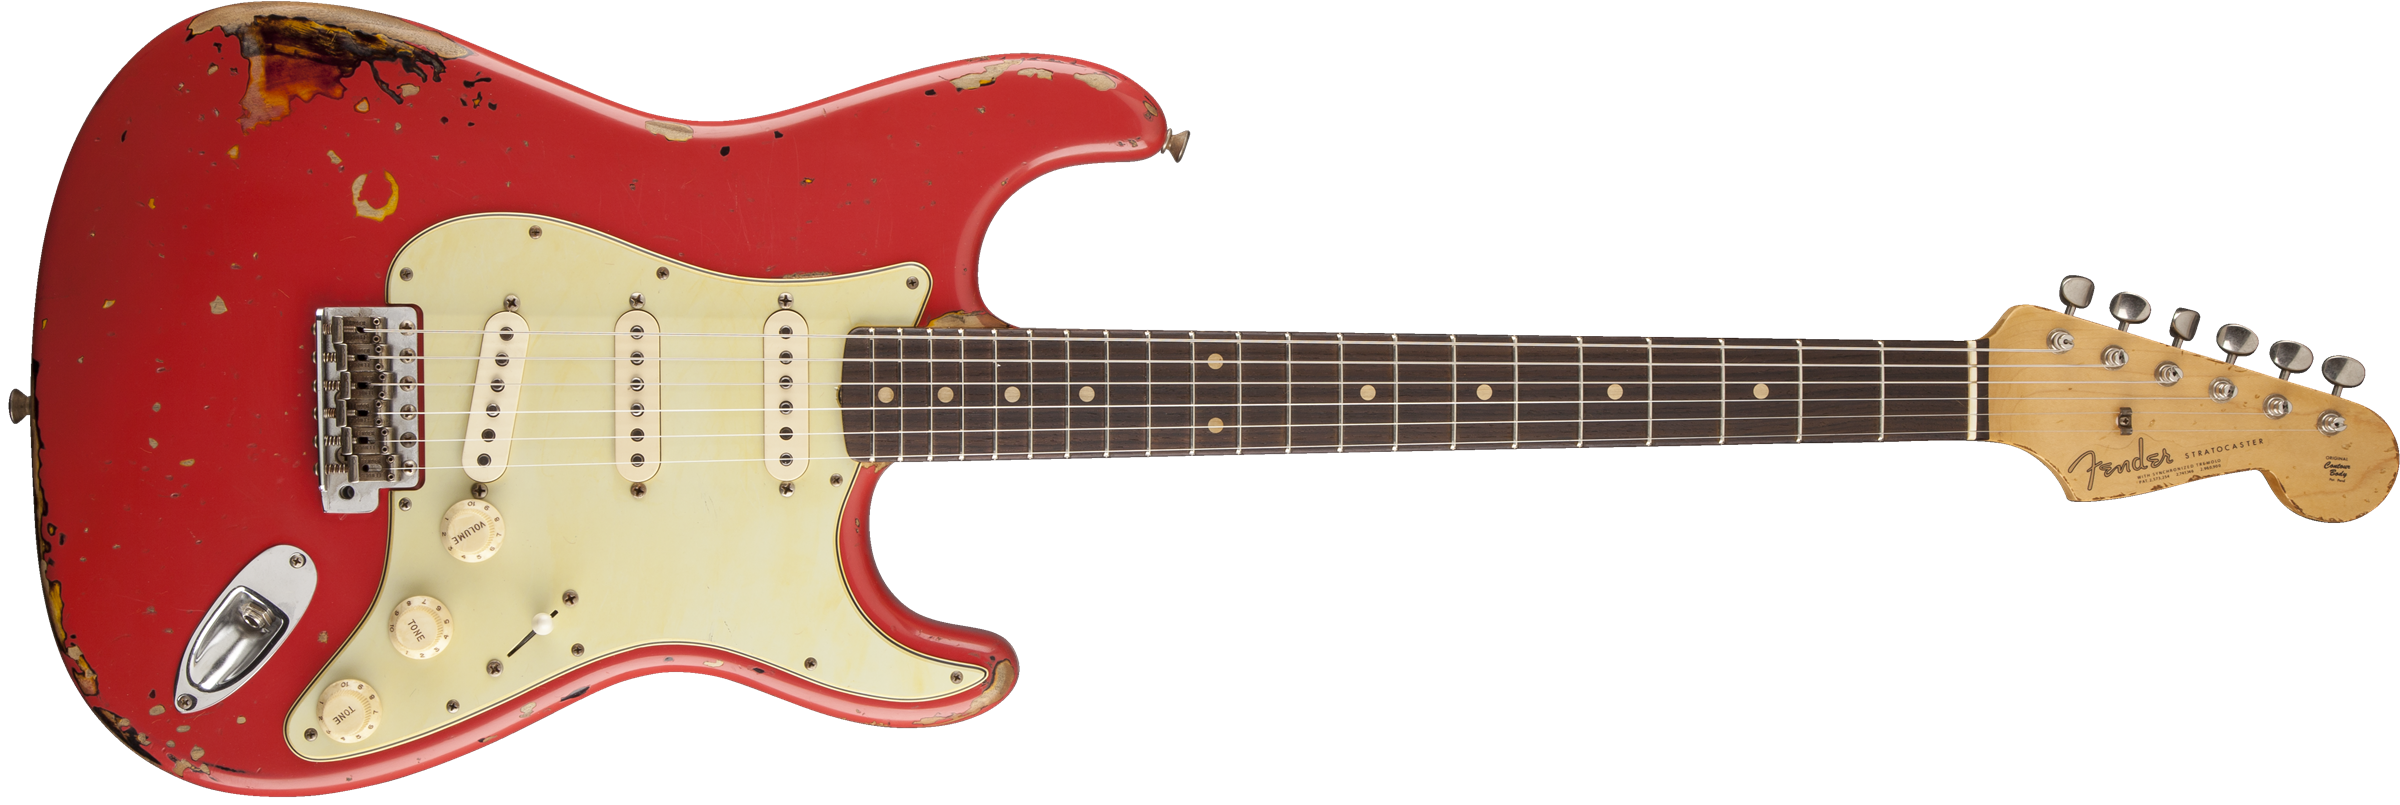 Michael Landau Signature 1963 Relic Stratocaster Artist Series Way Pick Up Switch Wiring Further Fender Strat Diagram As Hover To Zoom